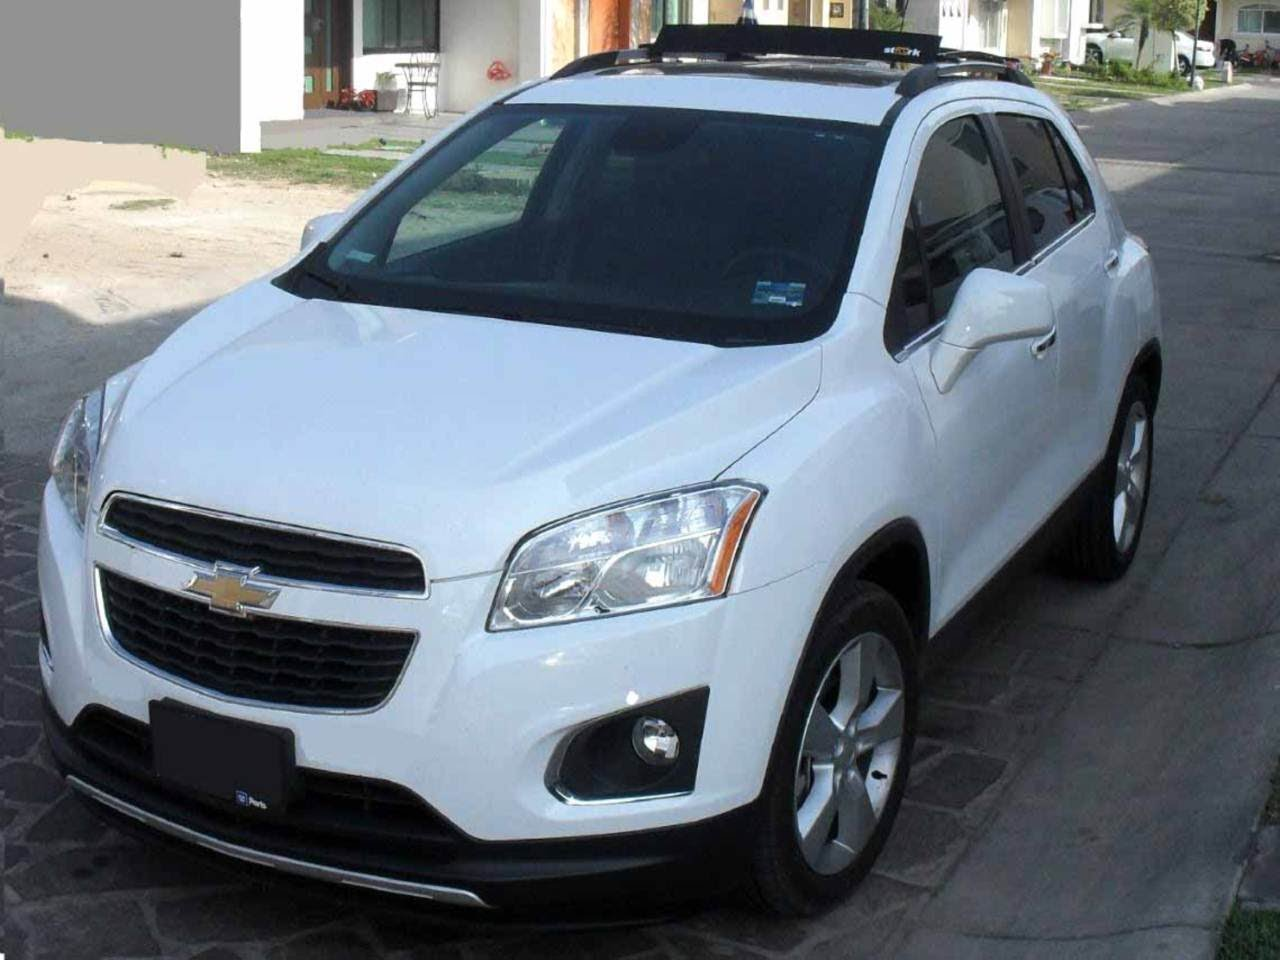 Cars chevrolet tracker #12